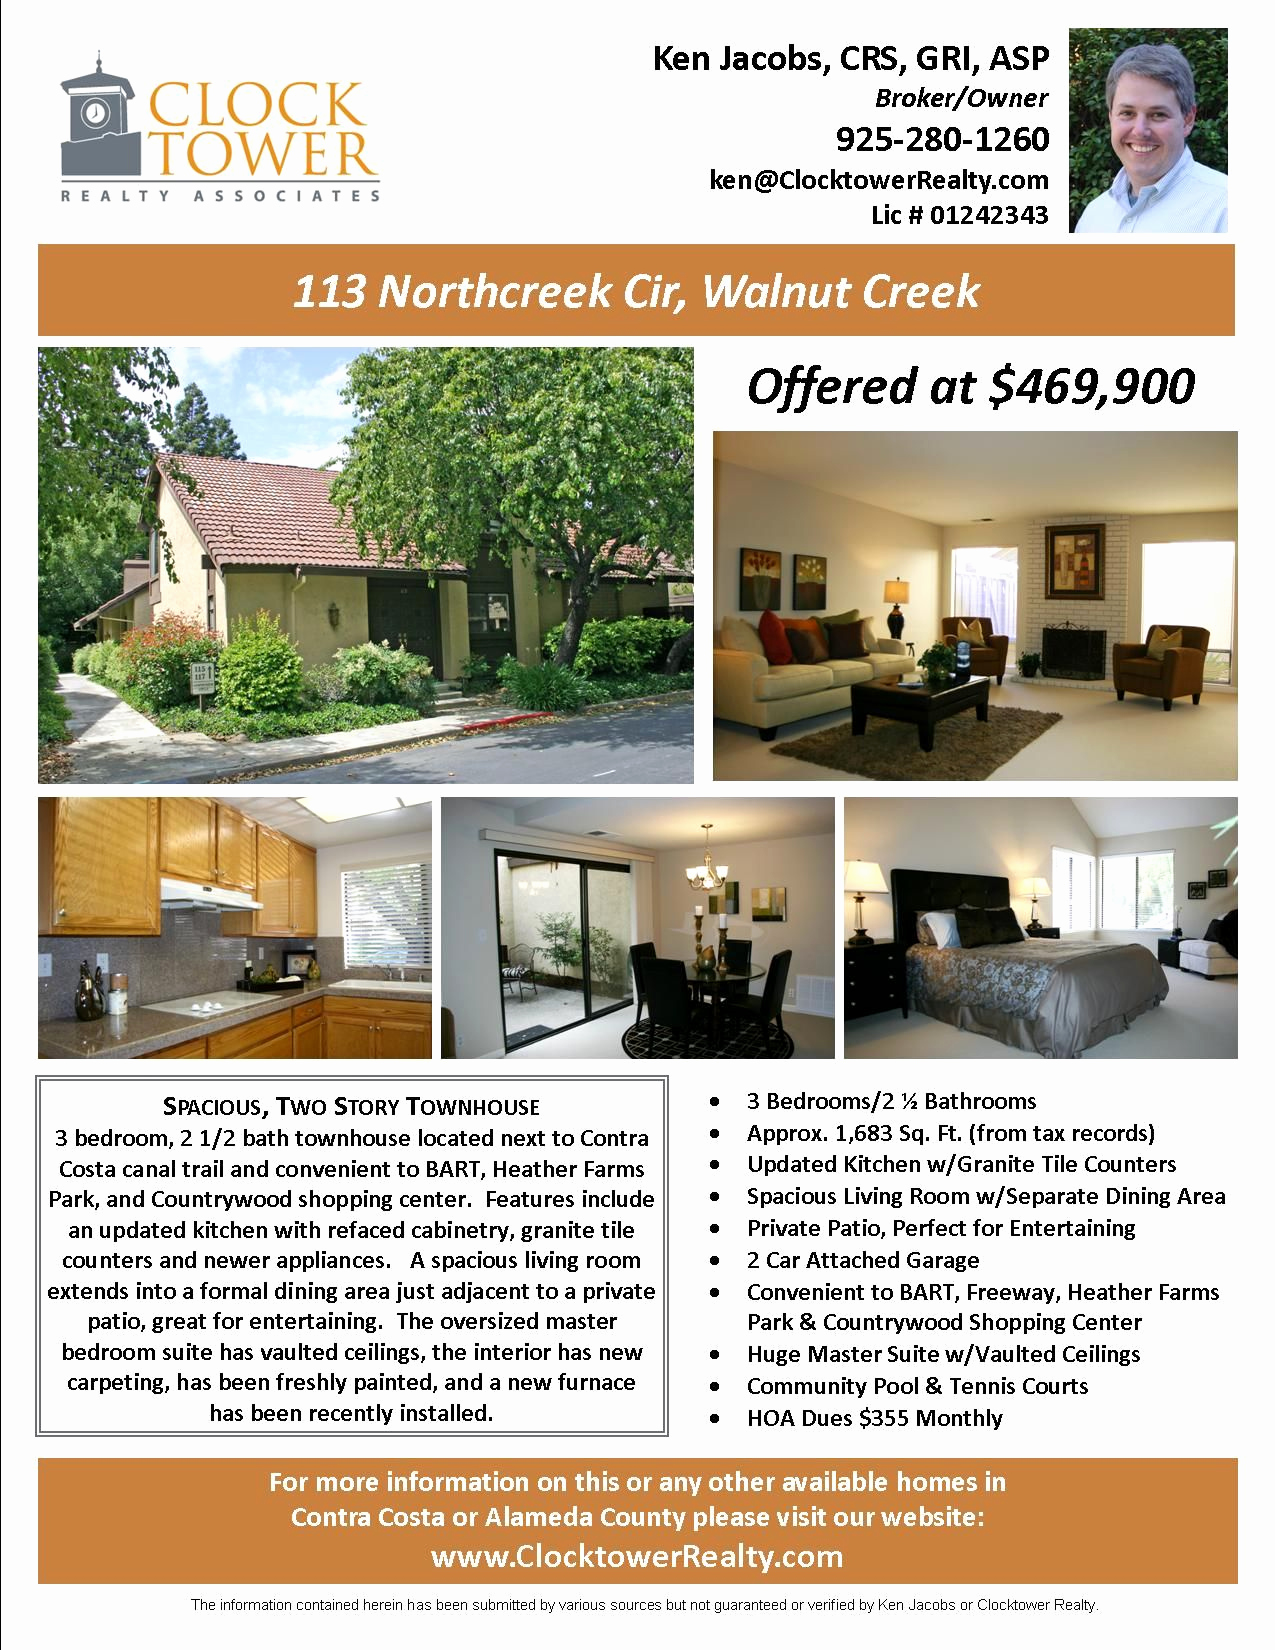 Home for Sale Flyer Elegant Flyers for Selling Houses Marketing Advertising